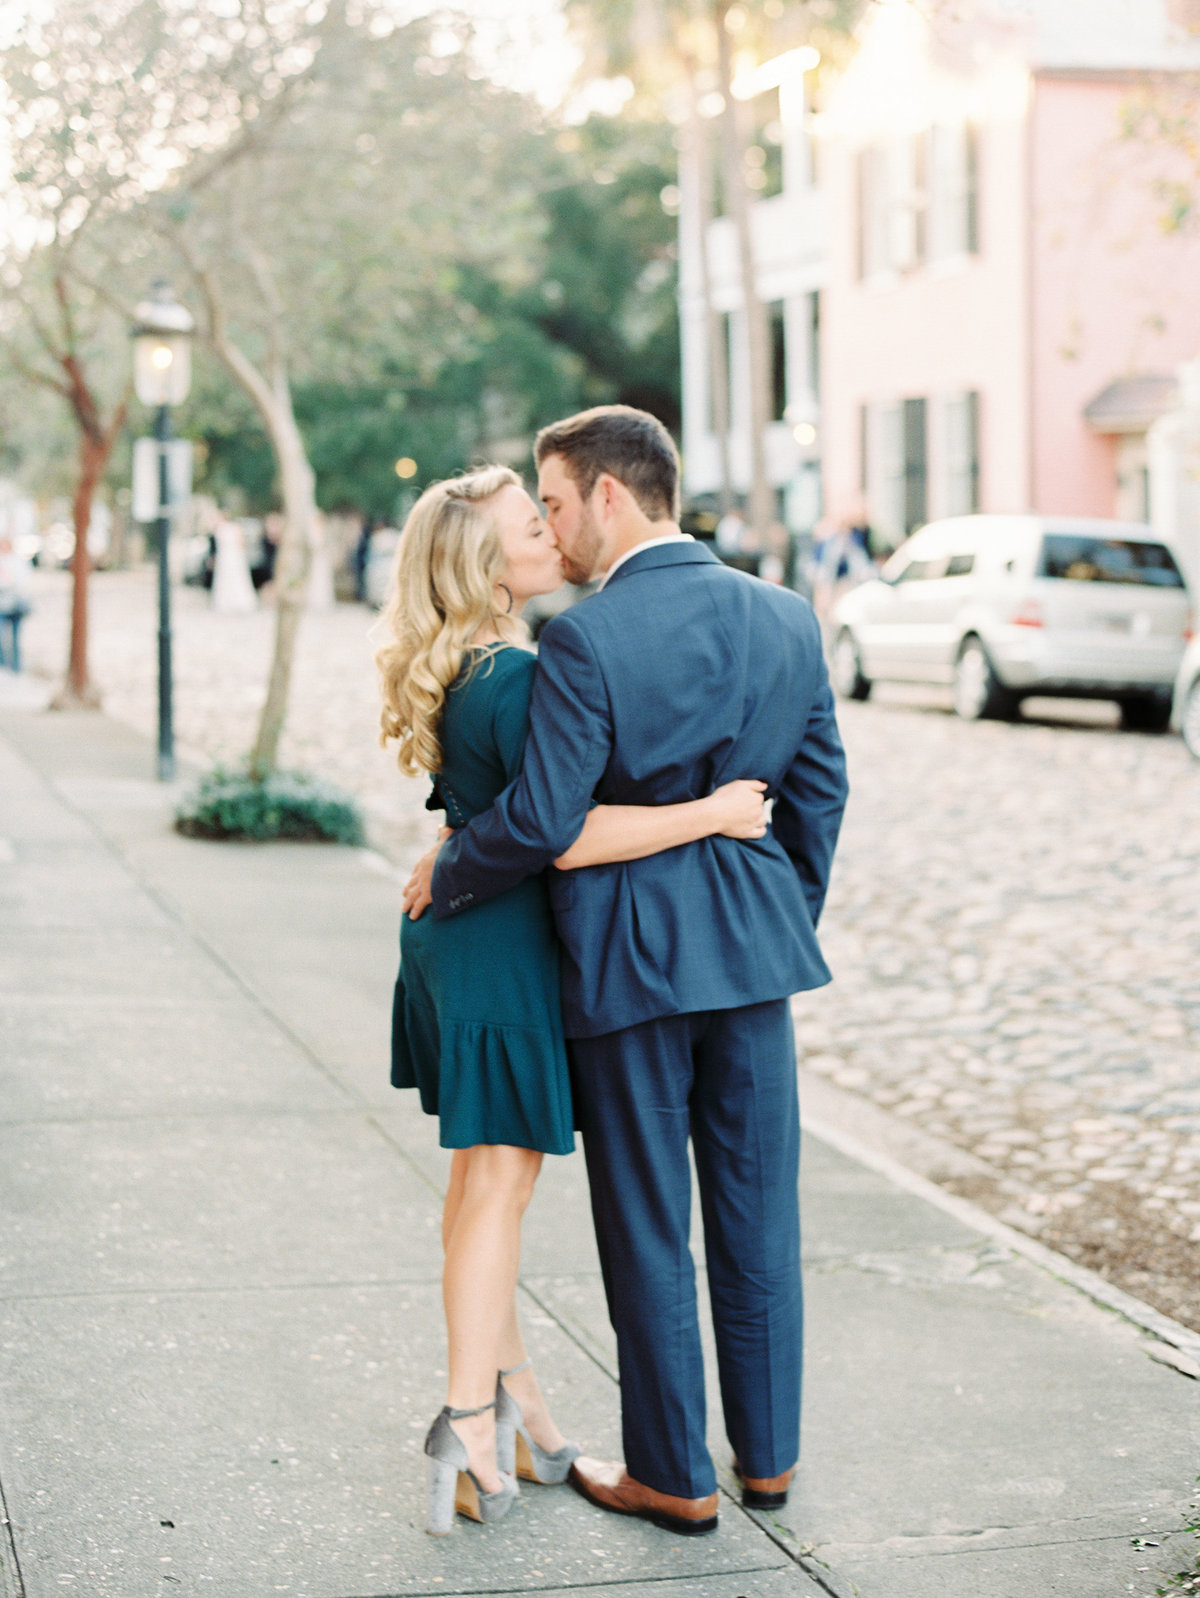 Walterboro-Beaufort-Downtown-Charleston-Engagement-22